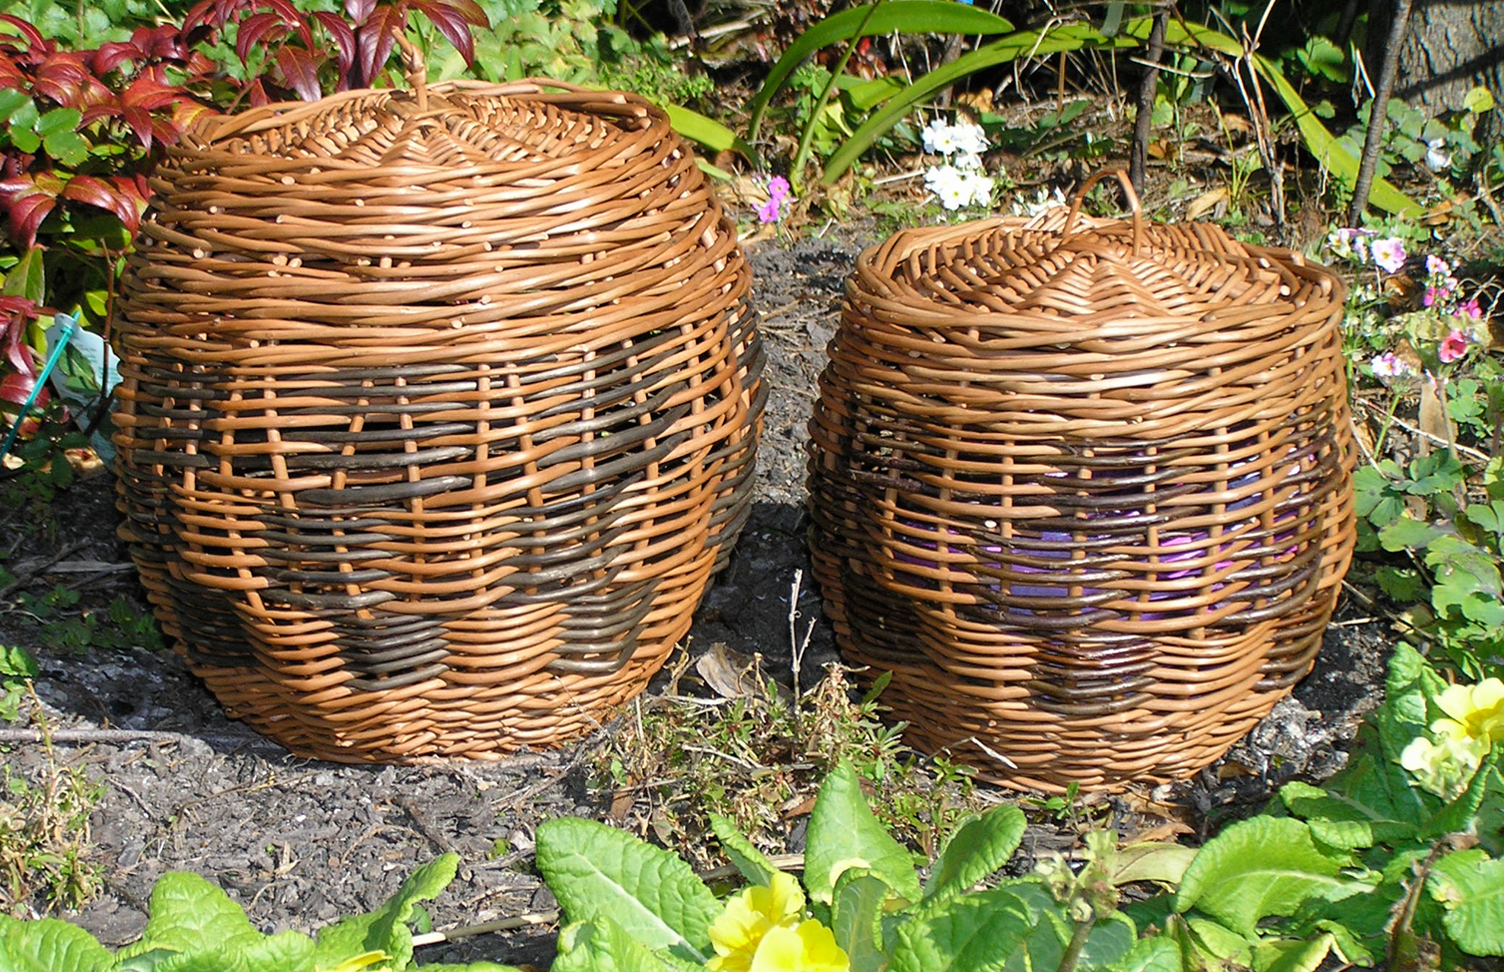 Pair of decorative baskets with lids